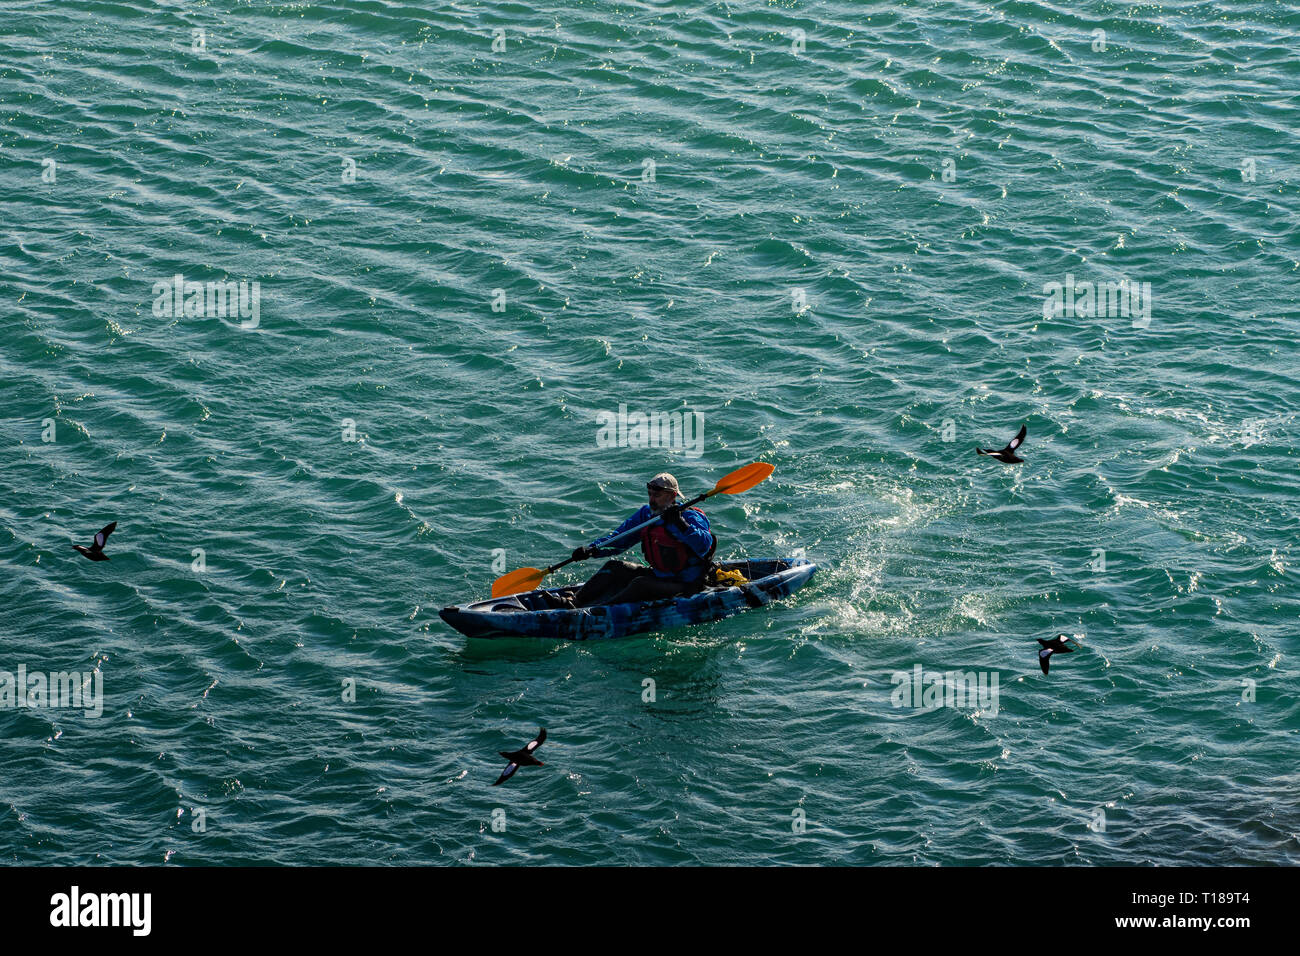 Bray Head, Ireland. 24th March, 2019 Kayaker enjoying calm, warm weather on his way from Greystones to Bray while guillemots are flying over him. Credit: Vitaliy Tuzov/Alamy Live News Stock Photo